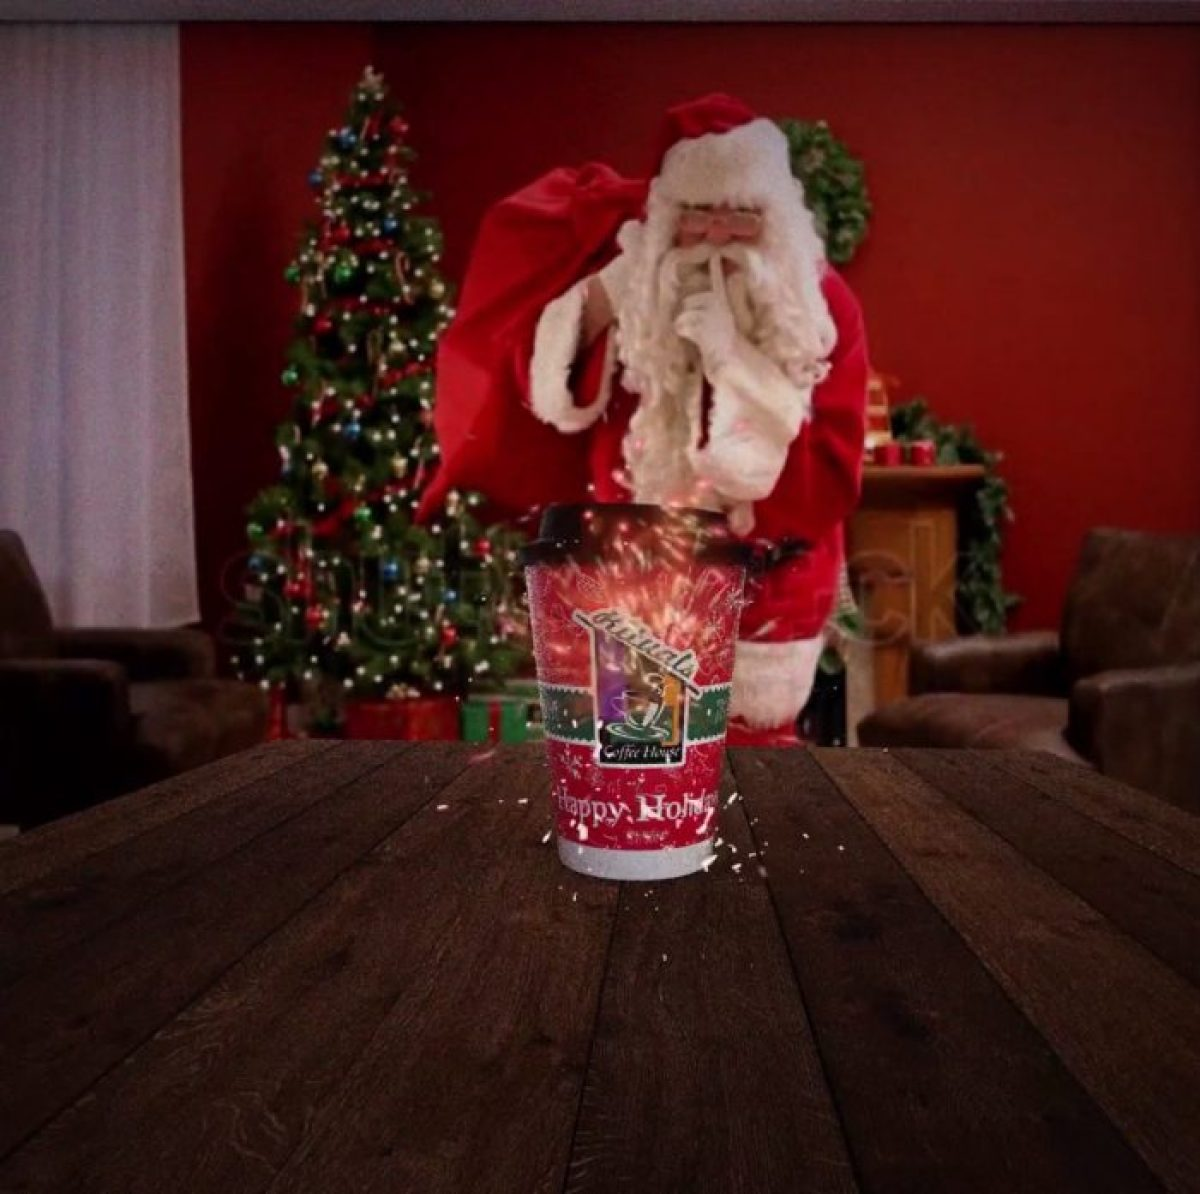 Image of Santa from a screen grab of a video by Rituals Coffee house. There is a watermark of the Shutterstock logo.